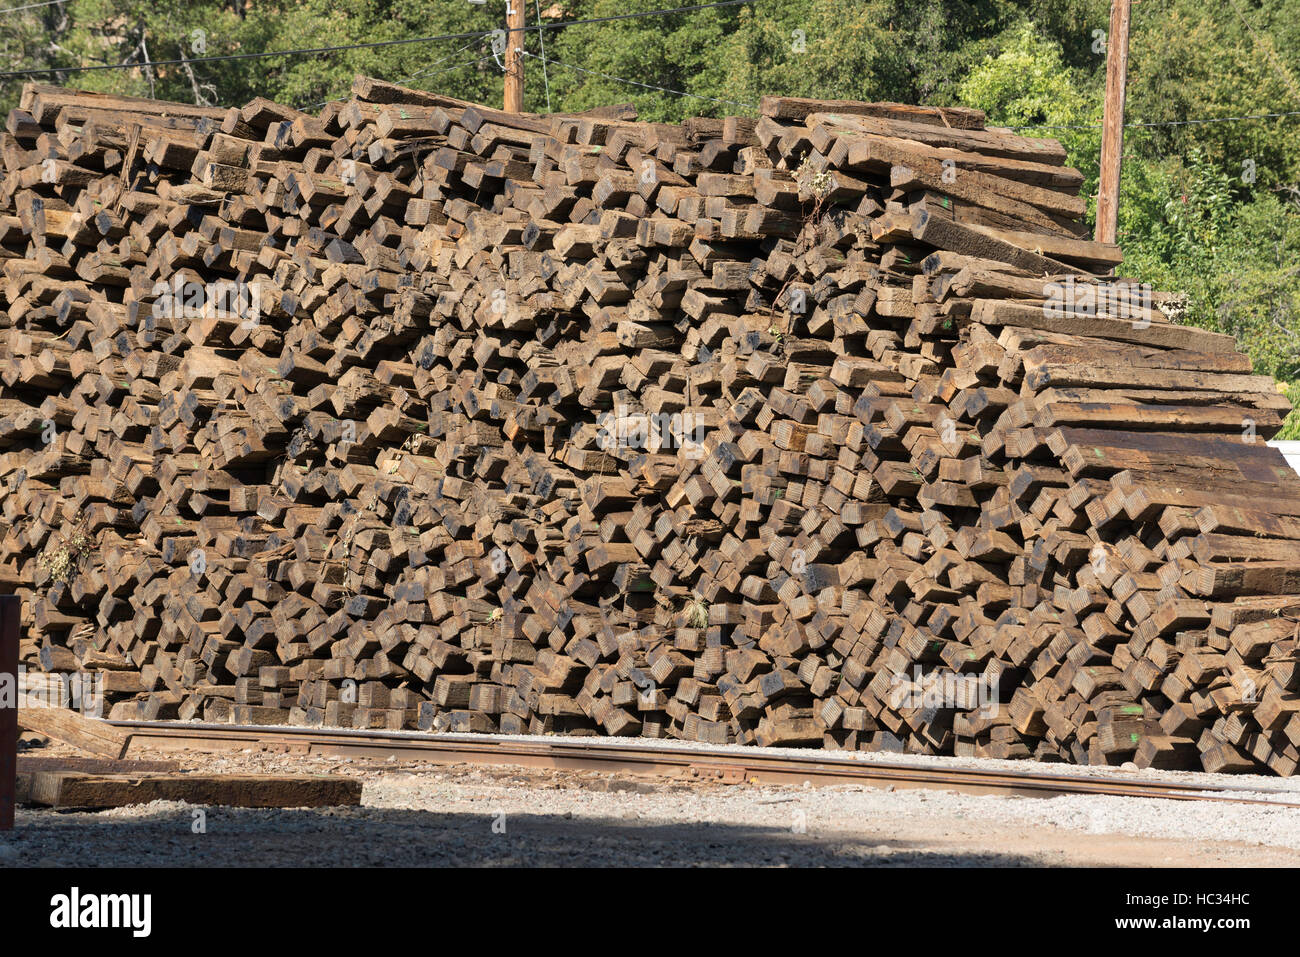 Used Railway Sleepers Devon Dawlish Devon Railway Sleepers